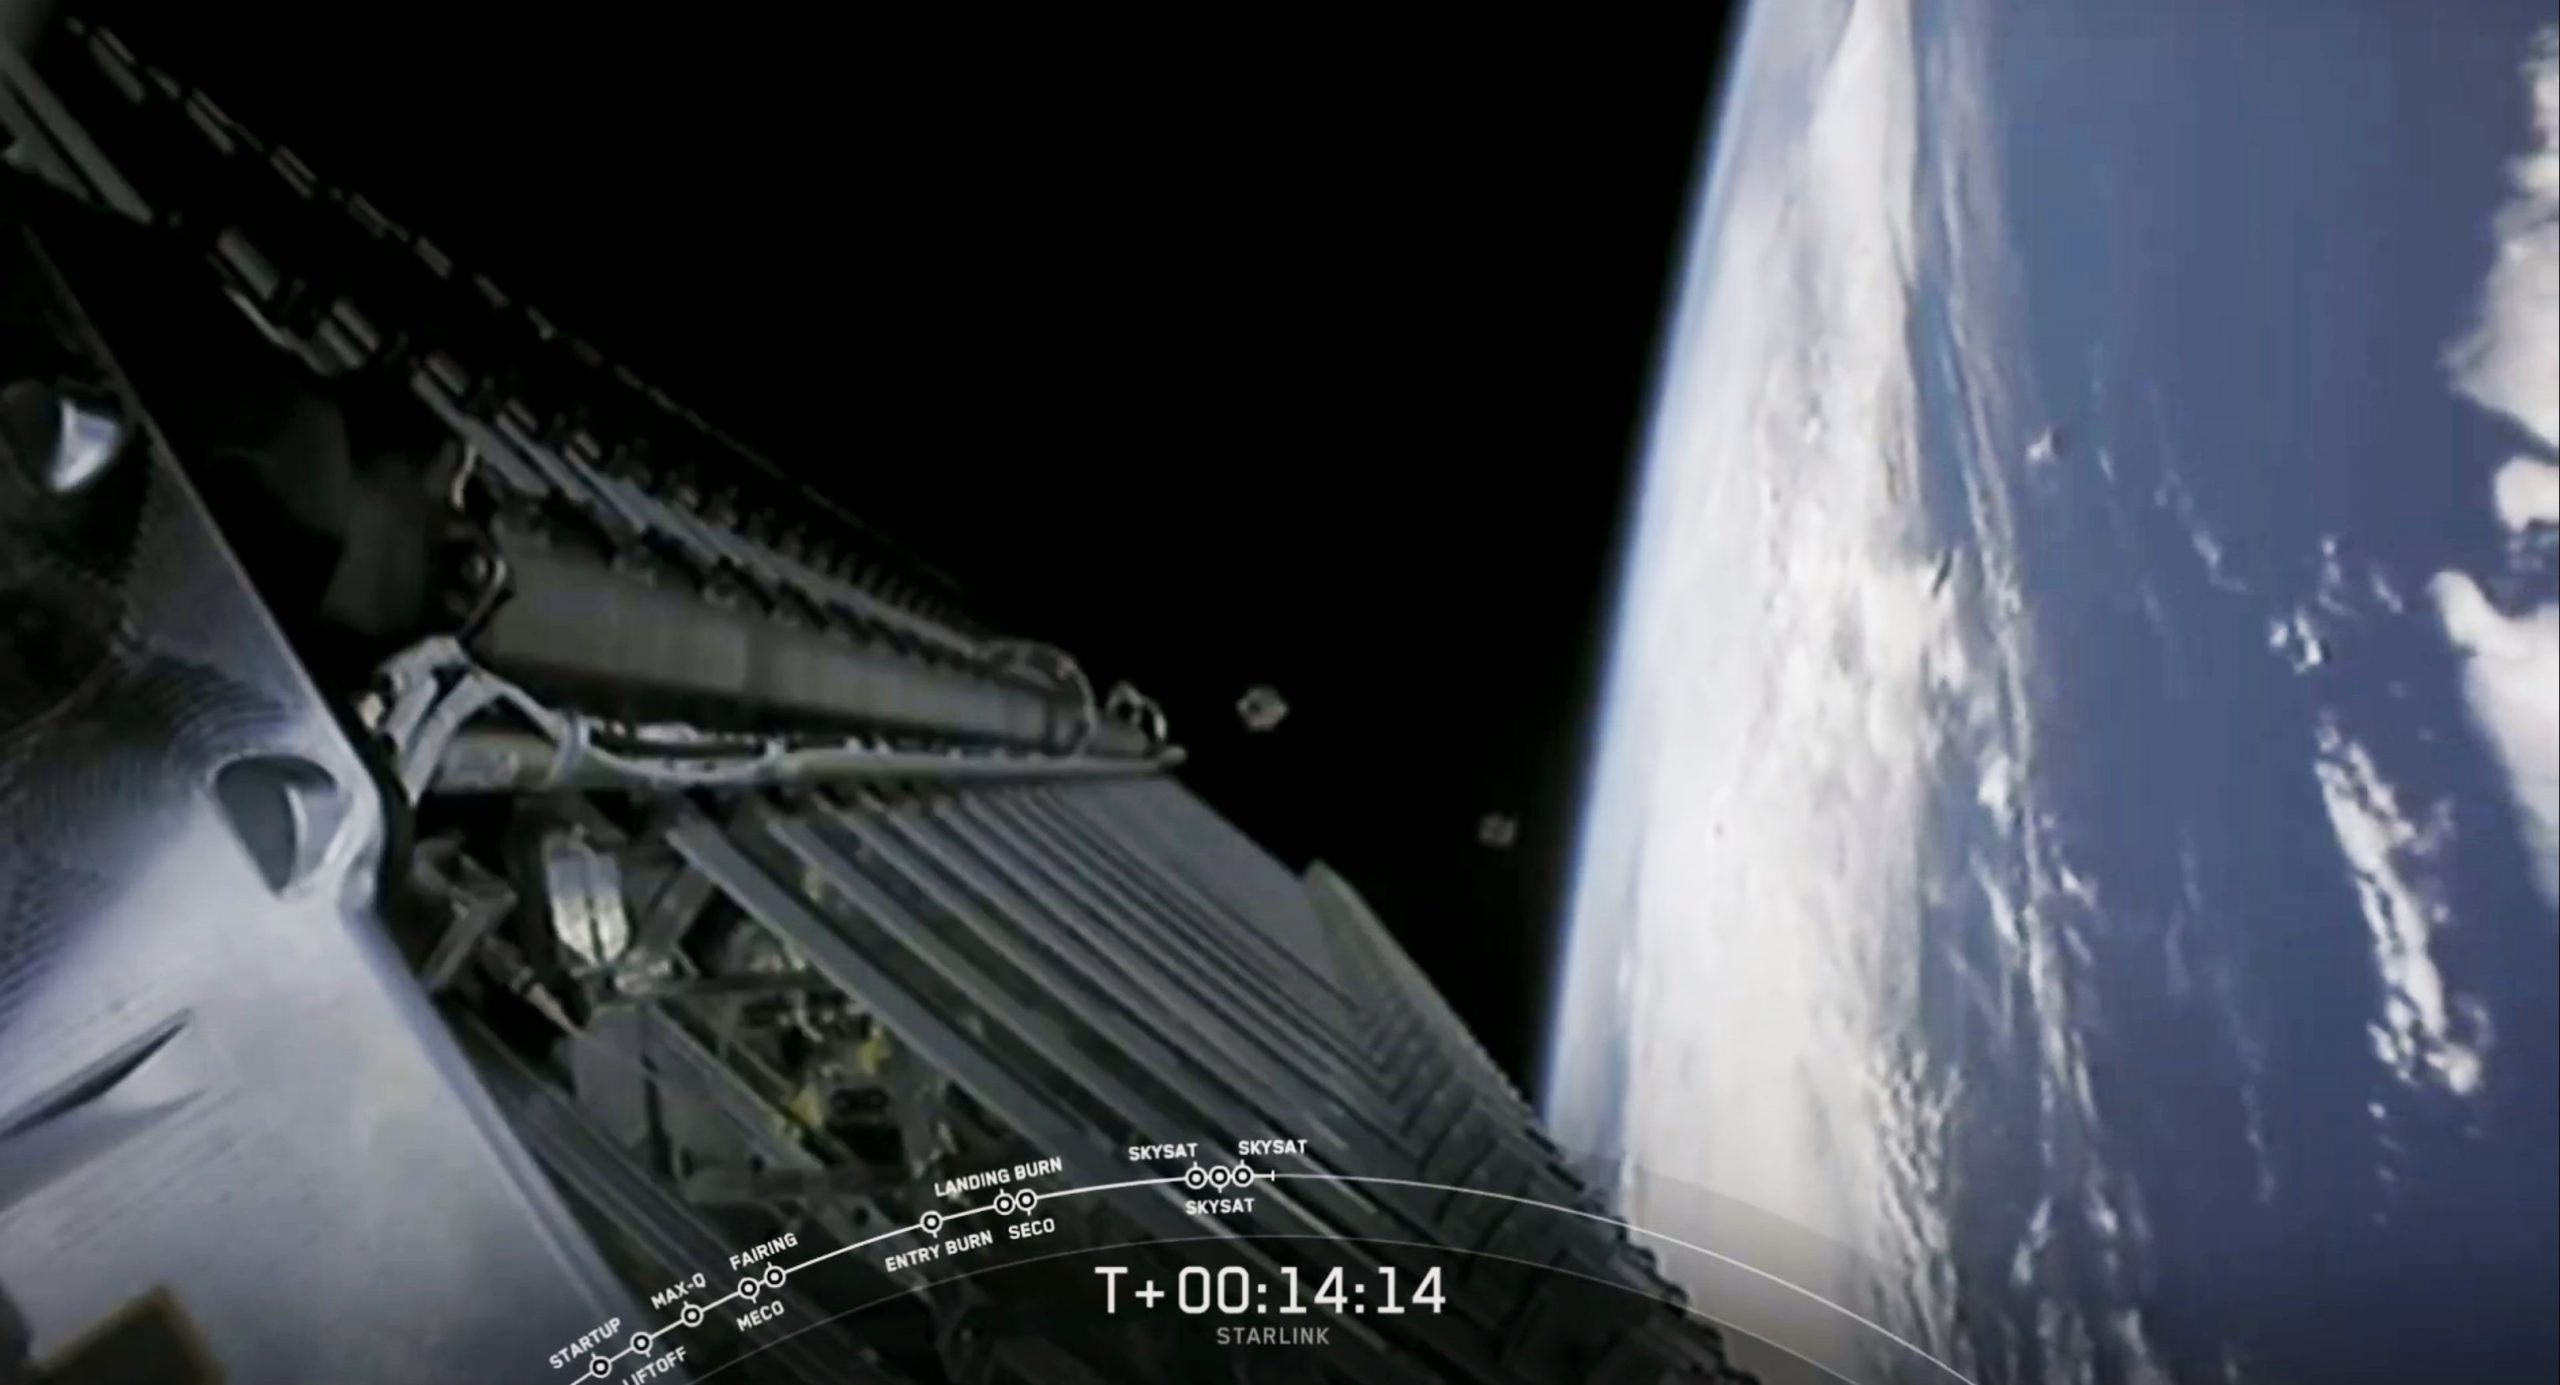 Starlink-10 SkySat Falcon 9 B1049 081820 webcast (SpaceX) SkySat deploy 1